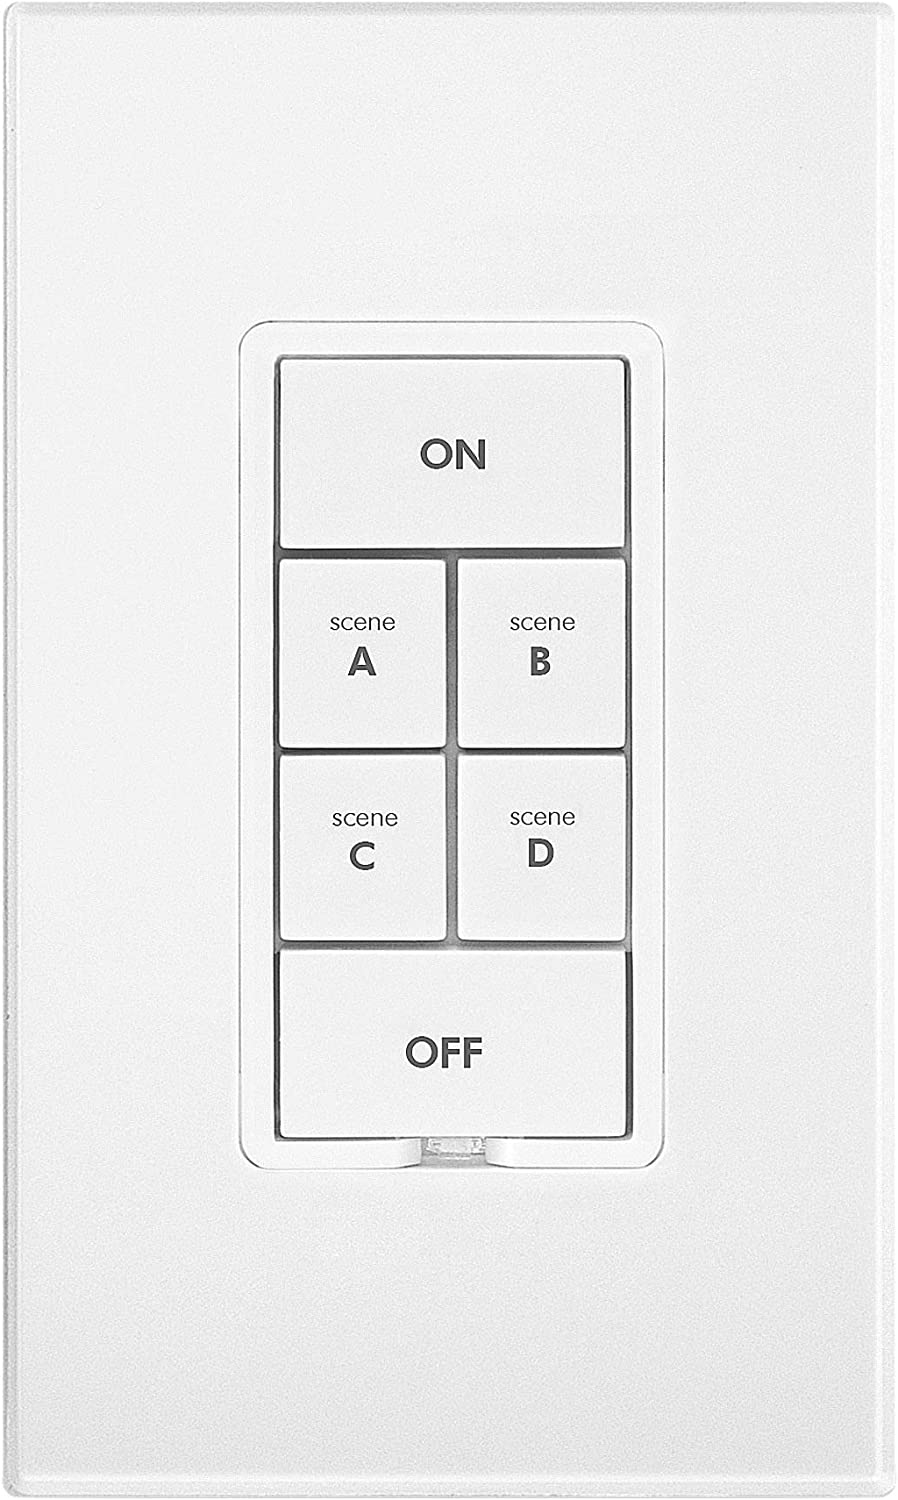 Insteon Smart Dimmer 6-Button Keypad, KeypadLinc In-Wall Controller, 2334-232 (White) - Insteon Hub required for voice control with Alexa & Google Assistant